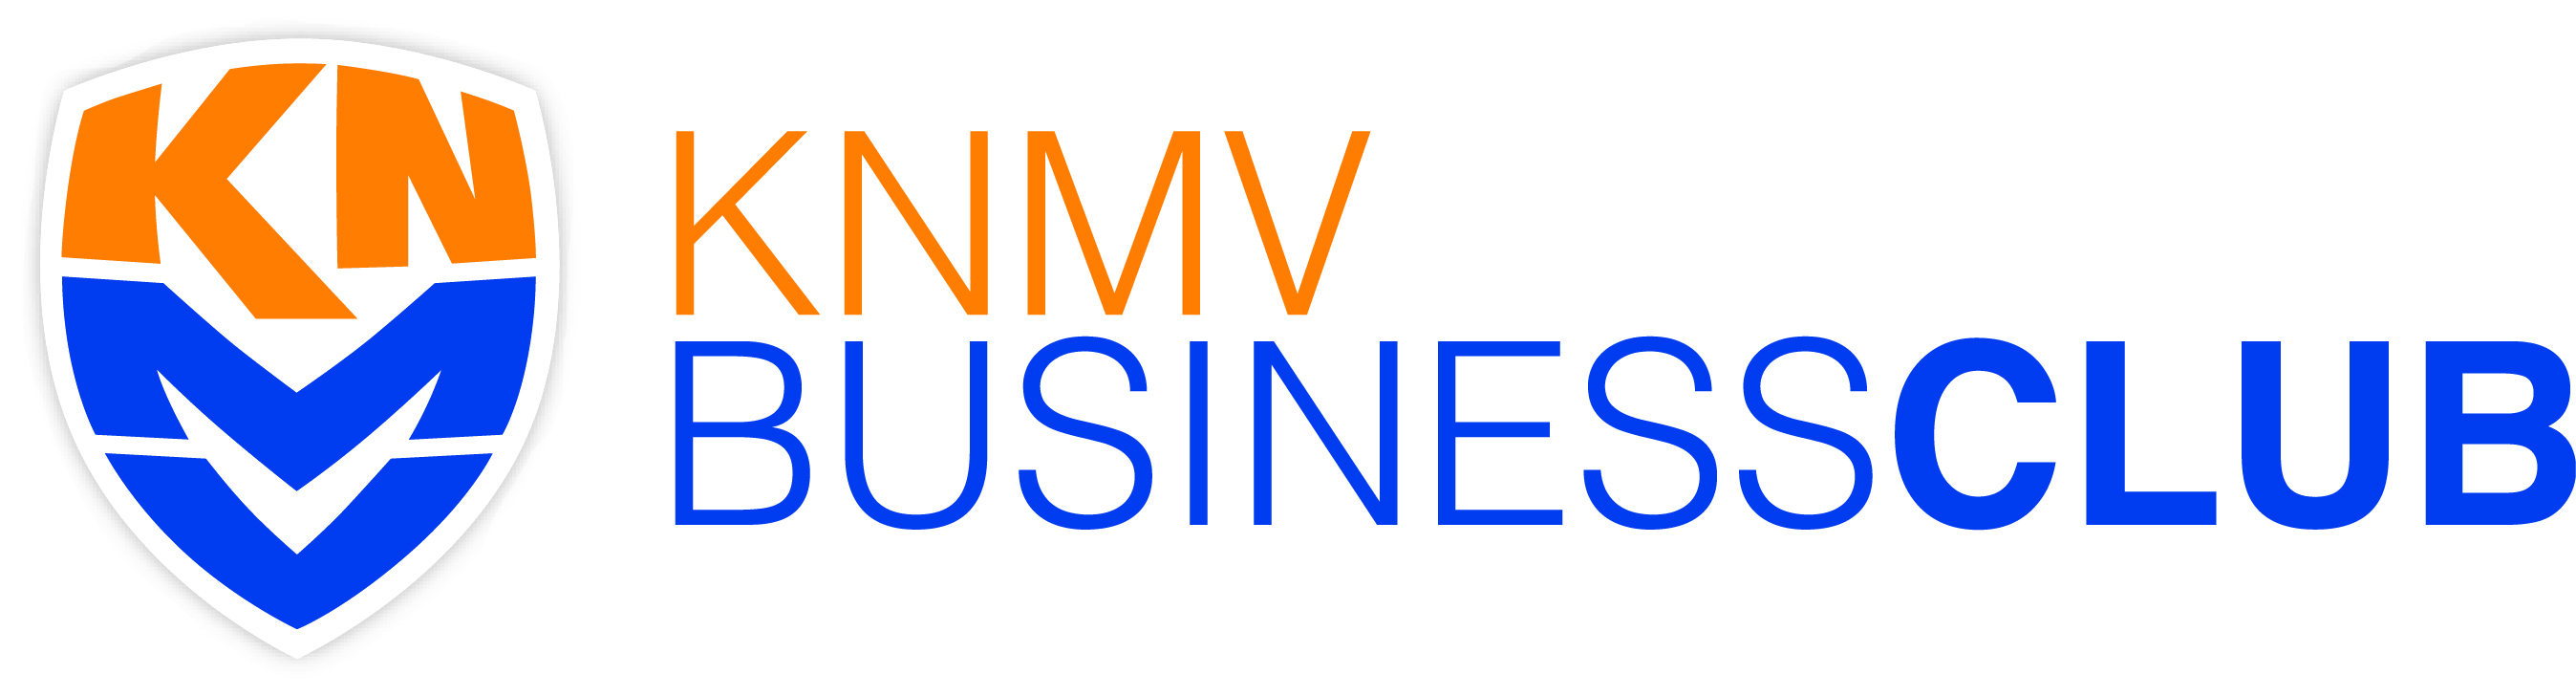 KNMV Businessclub